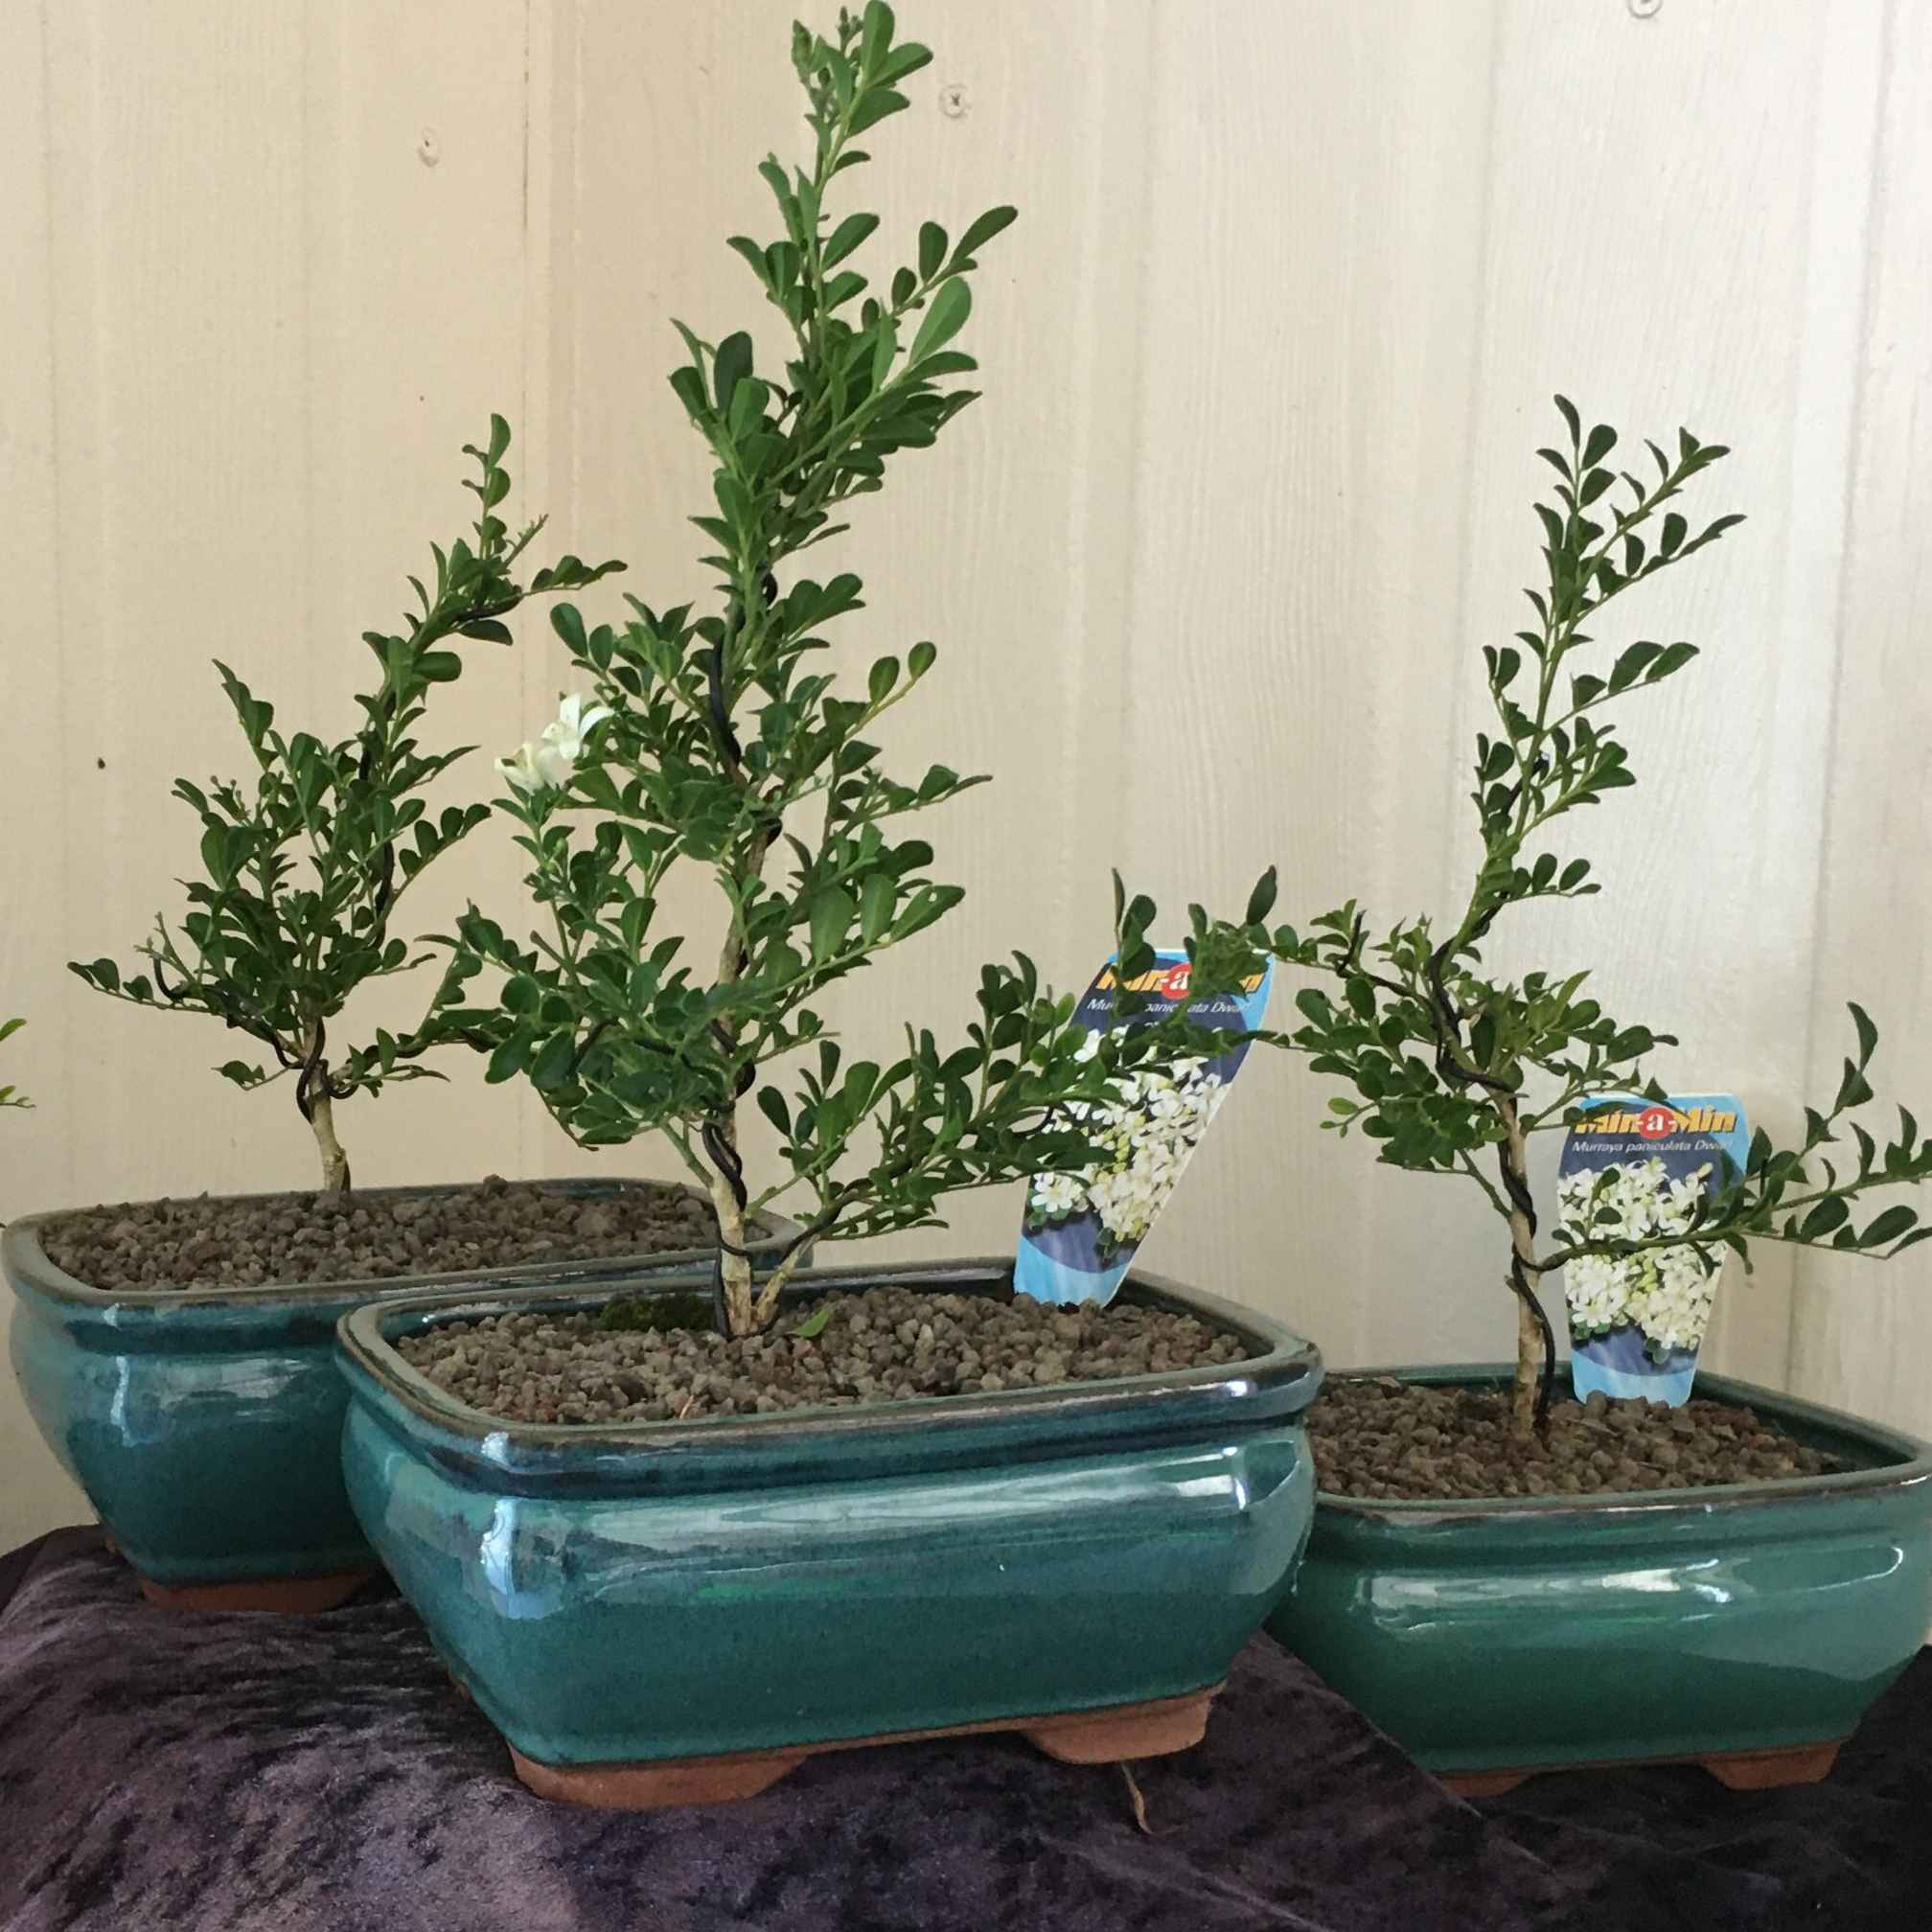 Beautiful mini murayas, that will delight any garden.  This petite Bonsai will flower delicate white blooms. This tree in training was designed by Kimberly Halter from the Bonsai Academy.   Kimberly has had 12 years of studying bonsai and Kimberly is as passionate about Bonsai, as we are with floristry.  Care instructions are included with bonsai trees.